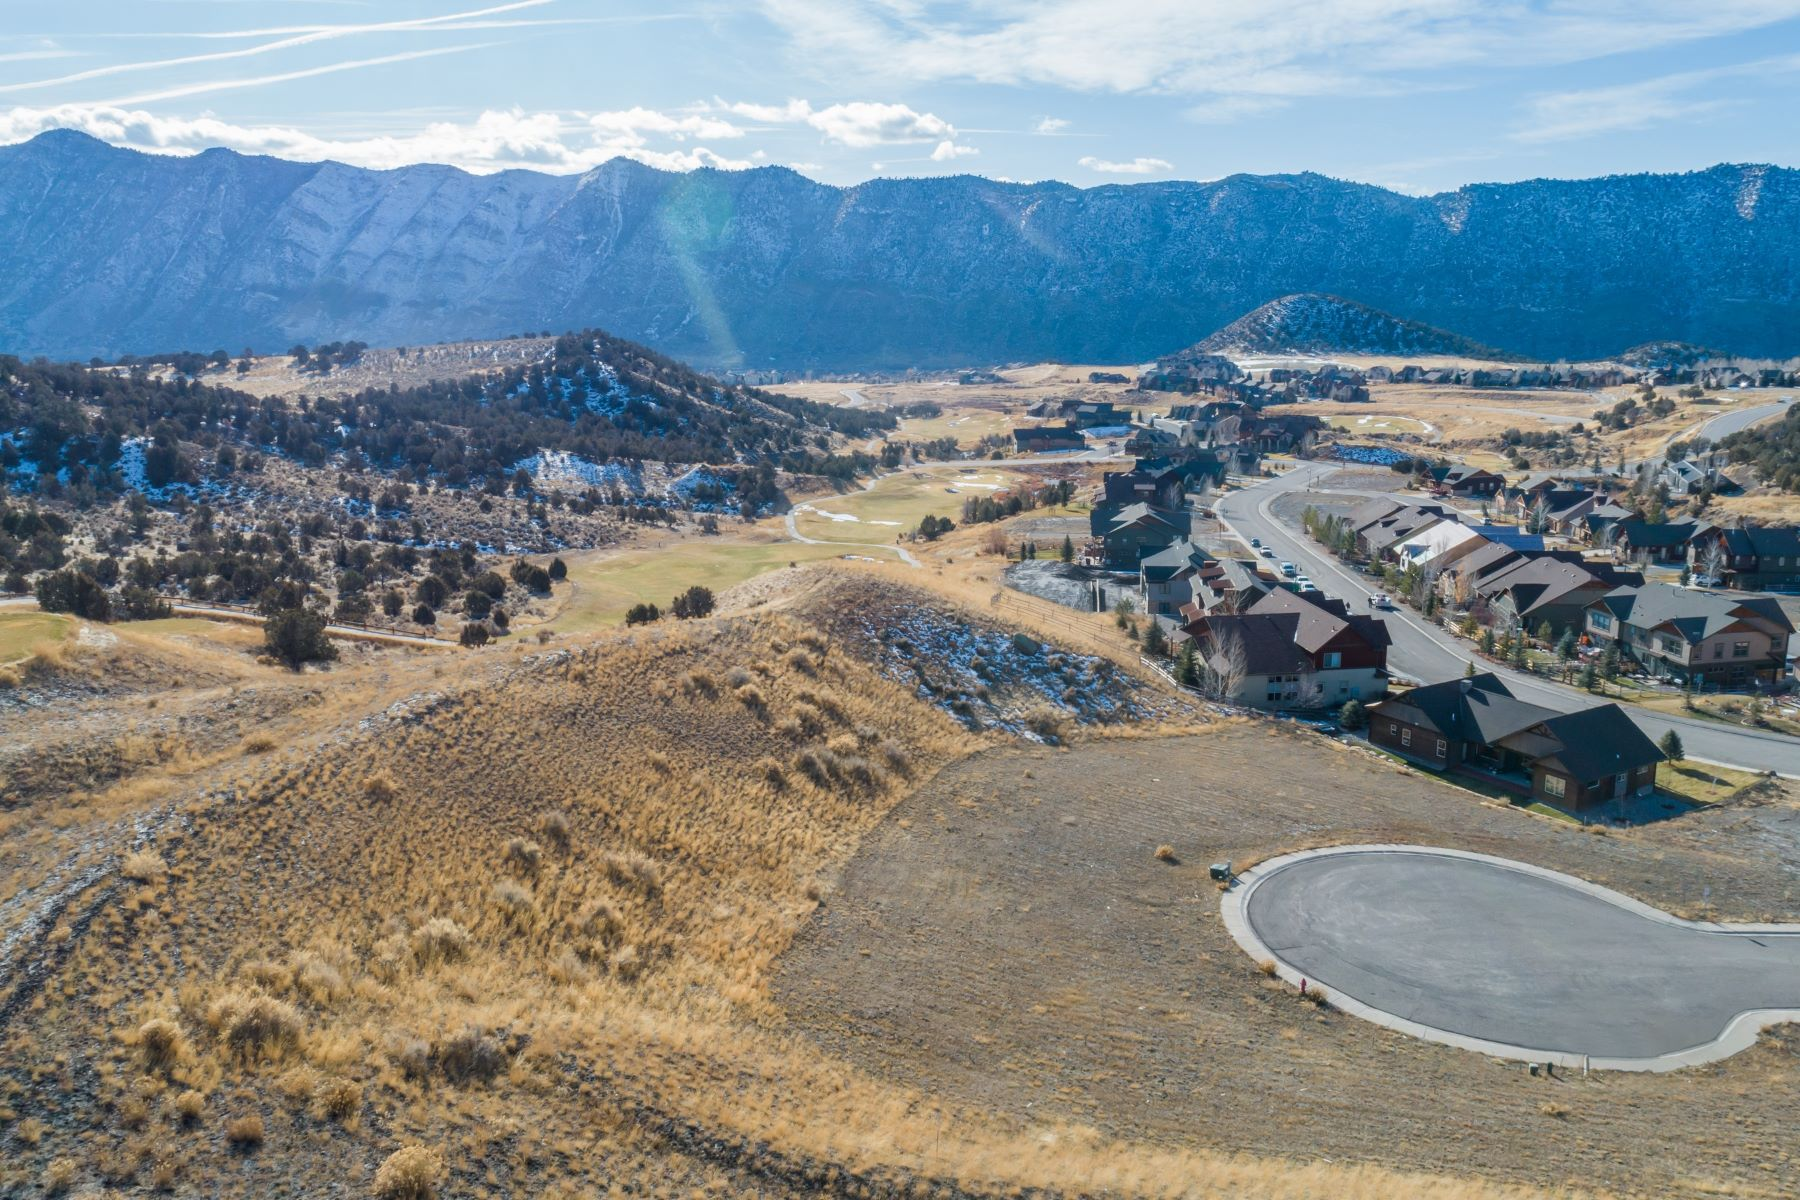 Land for Sale at LAKOTA CANYON RANCH, FLG 5, LOT 20 52 Whitetail Court New Castle, Colorado 81647 United States